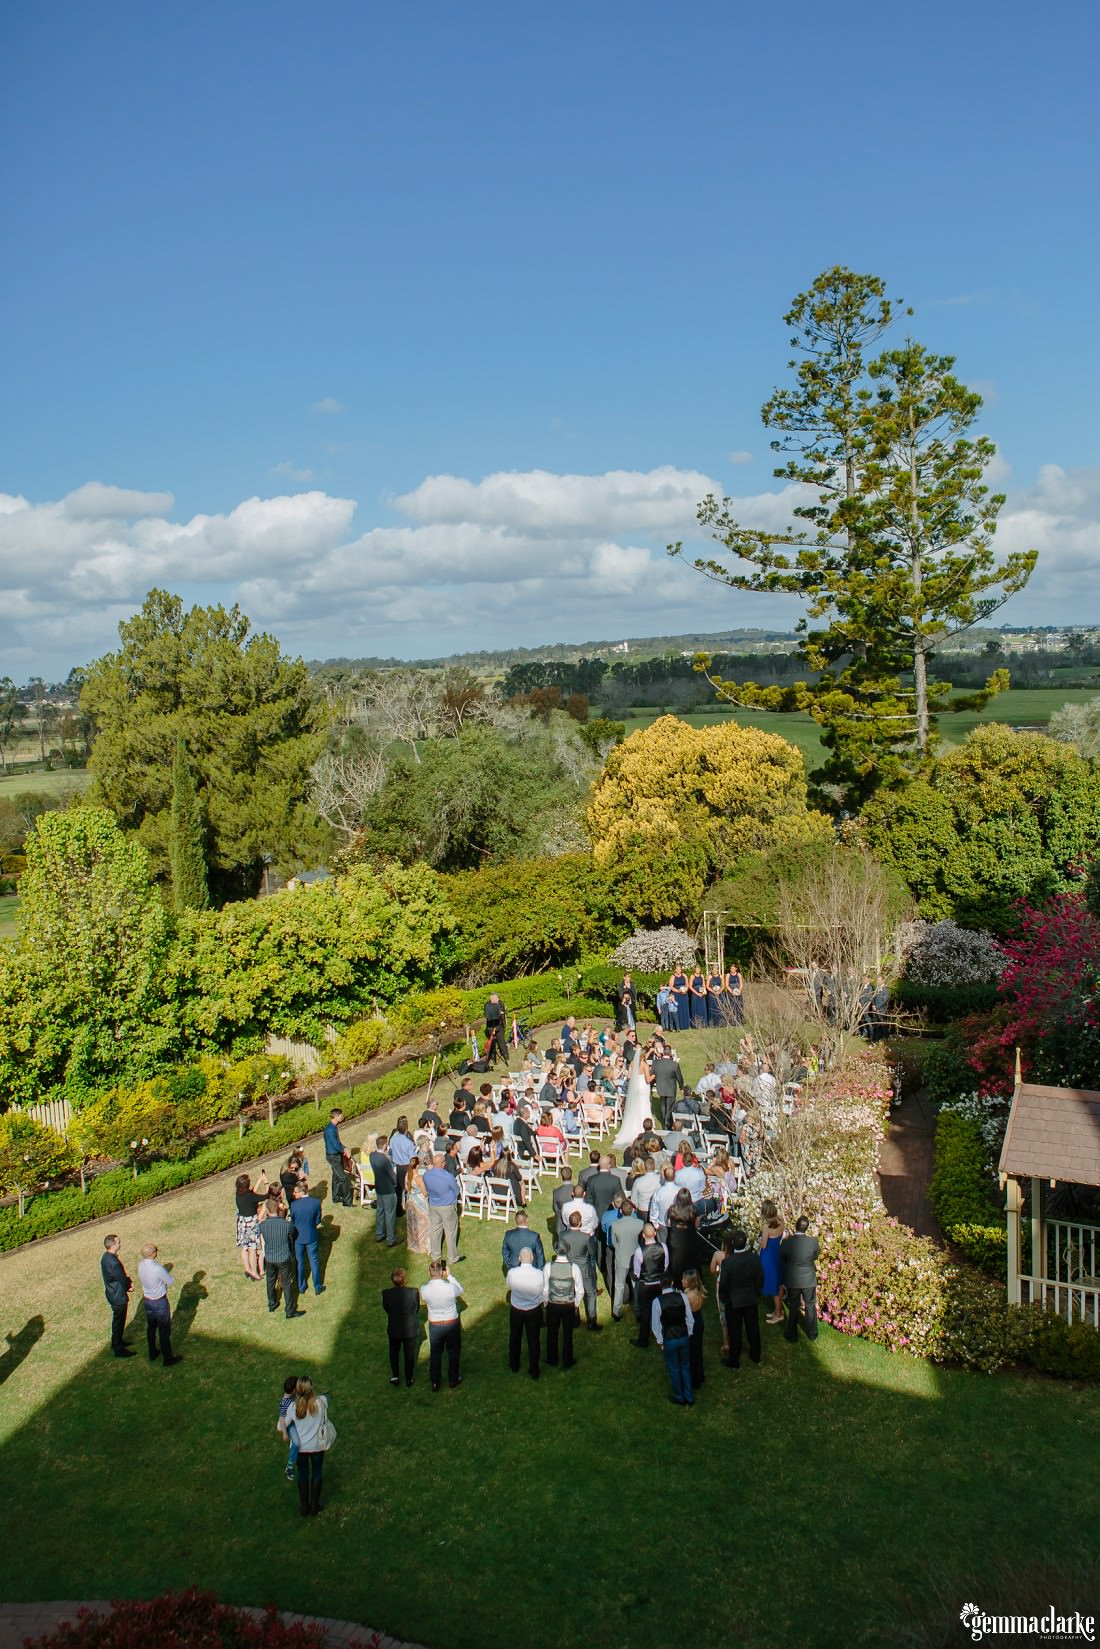 An overhead shot of an outdoor wedding ceremony in progress